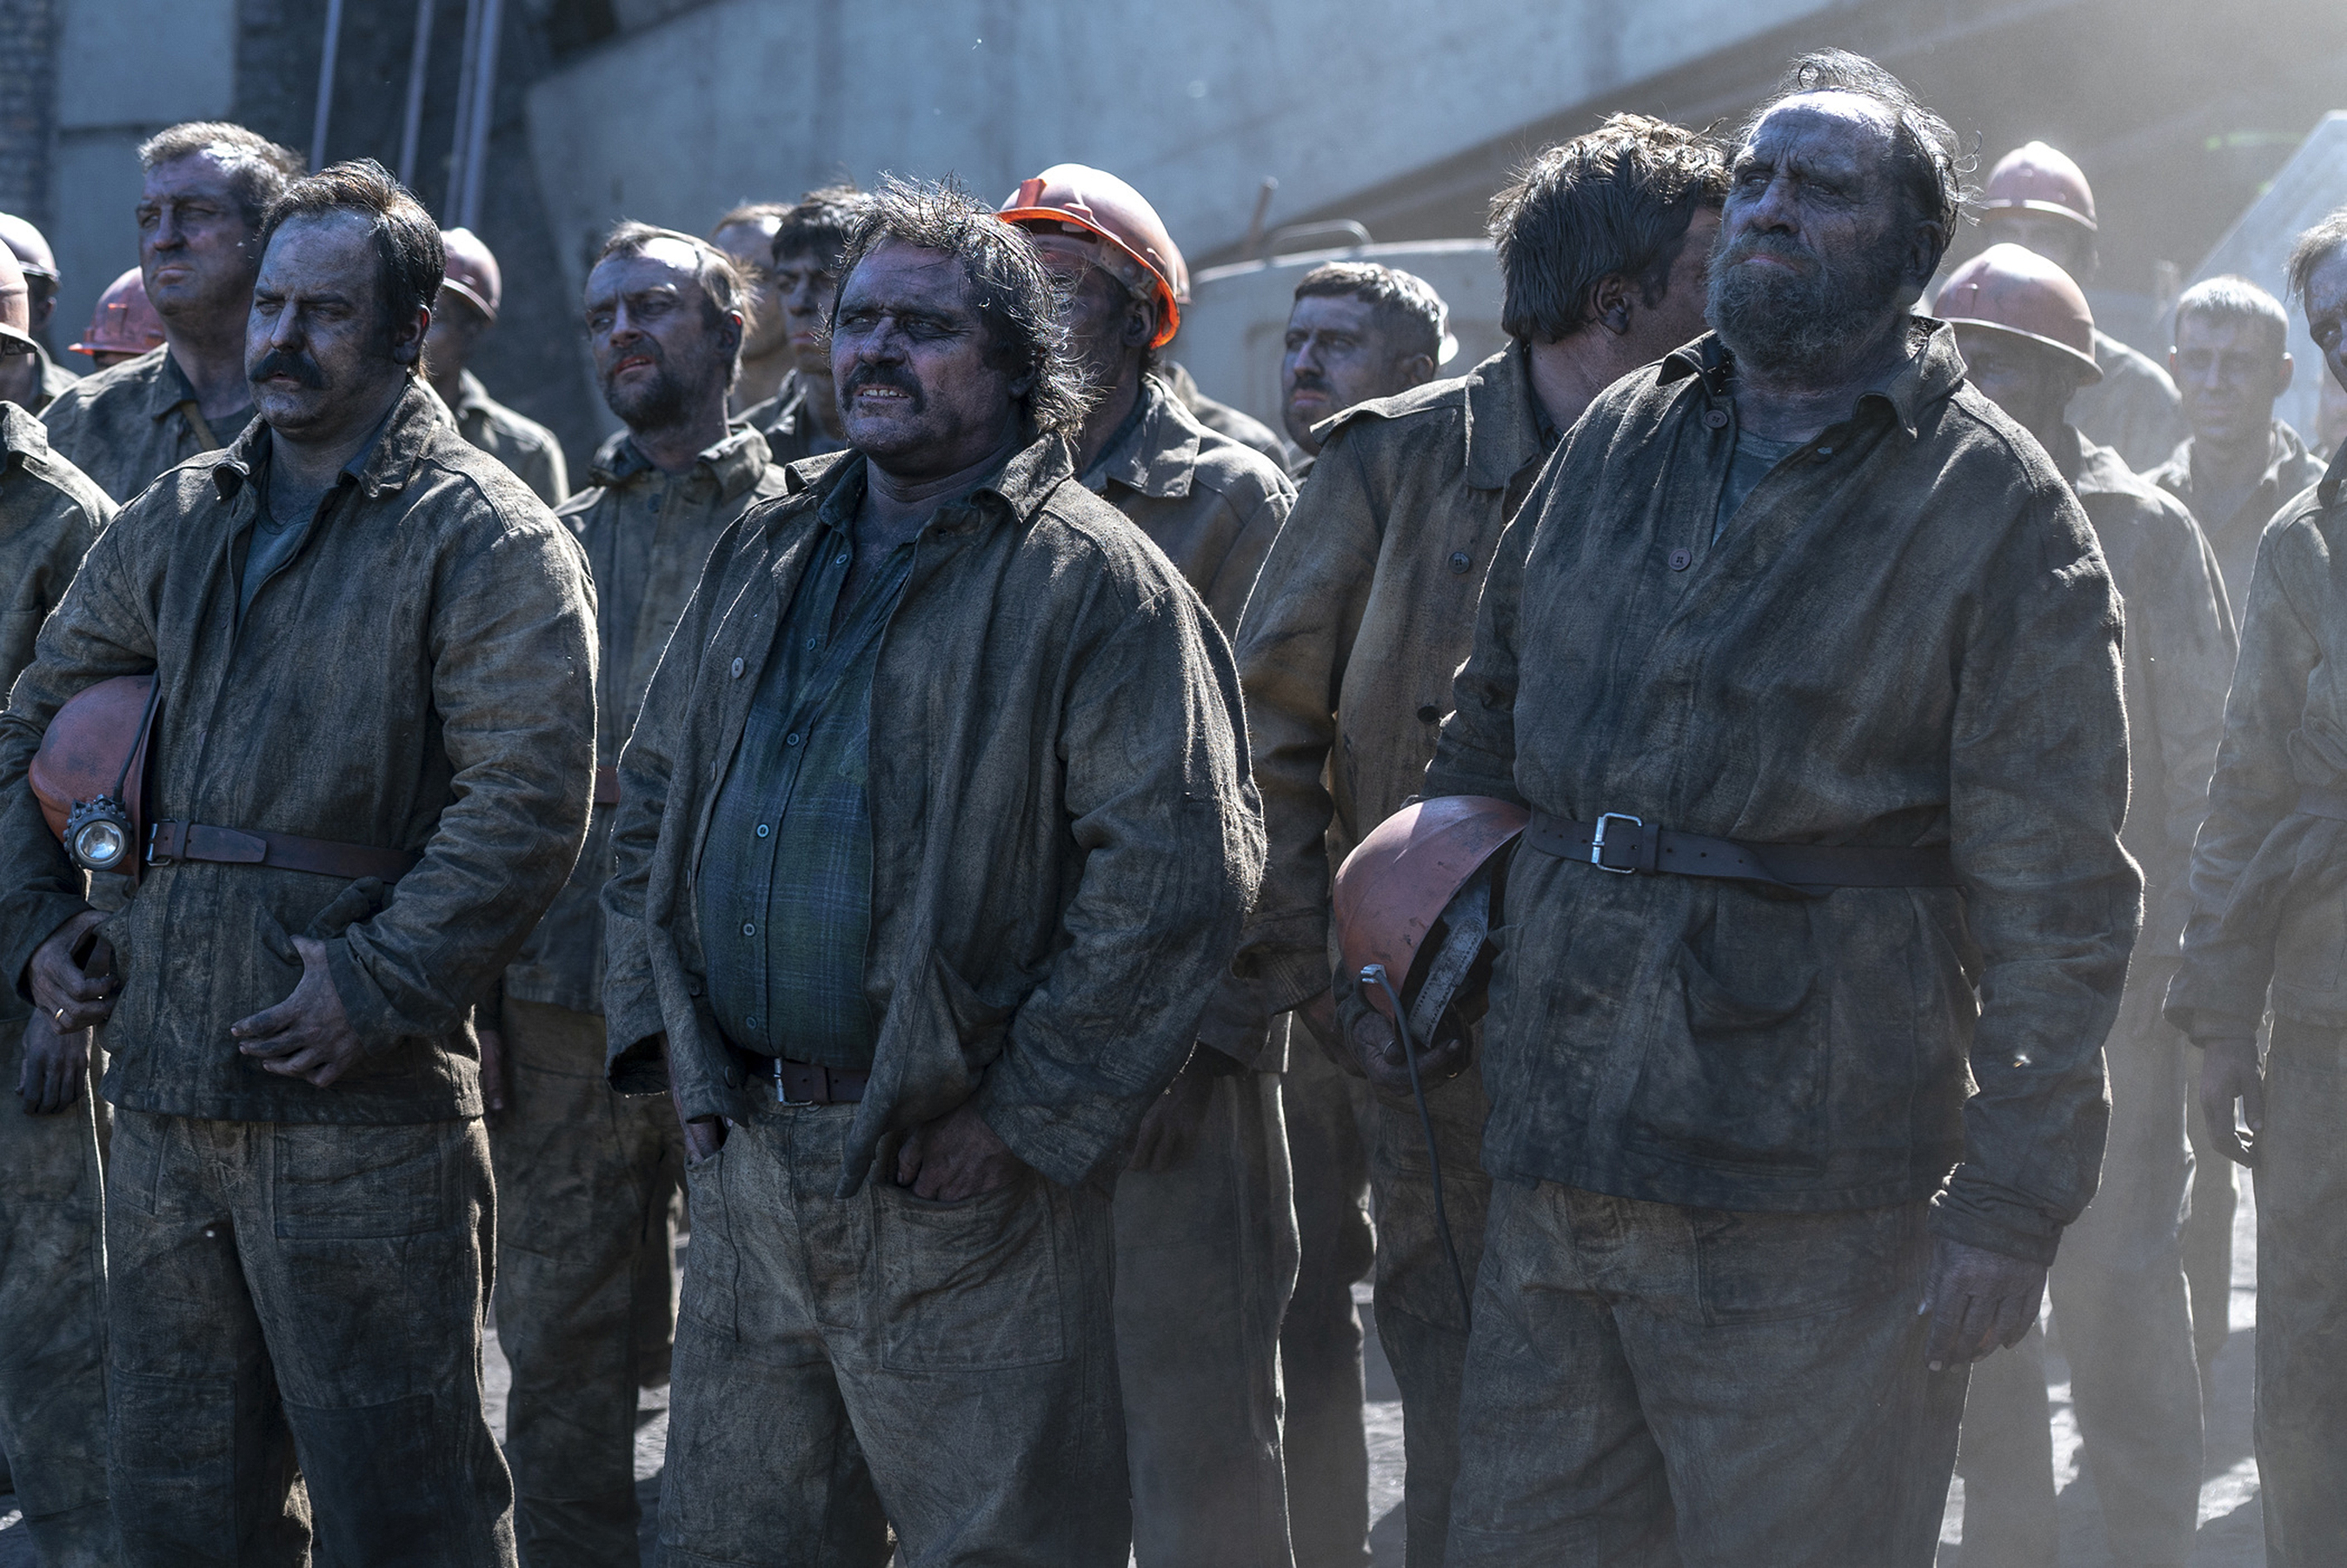 Can't get over Game of Thrones and Avengers Endgame? HBOs Chernobyl is sure to be your new favorite.